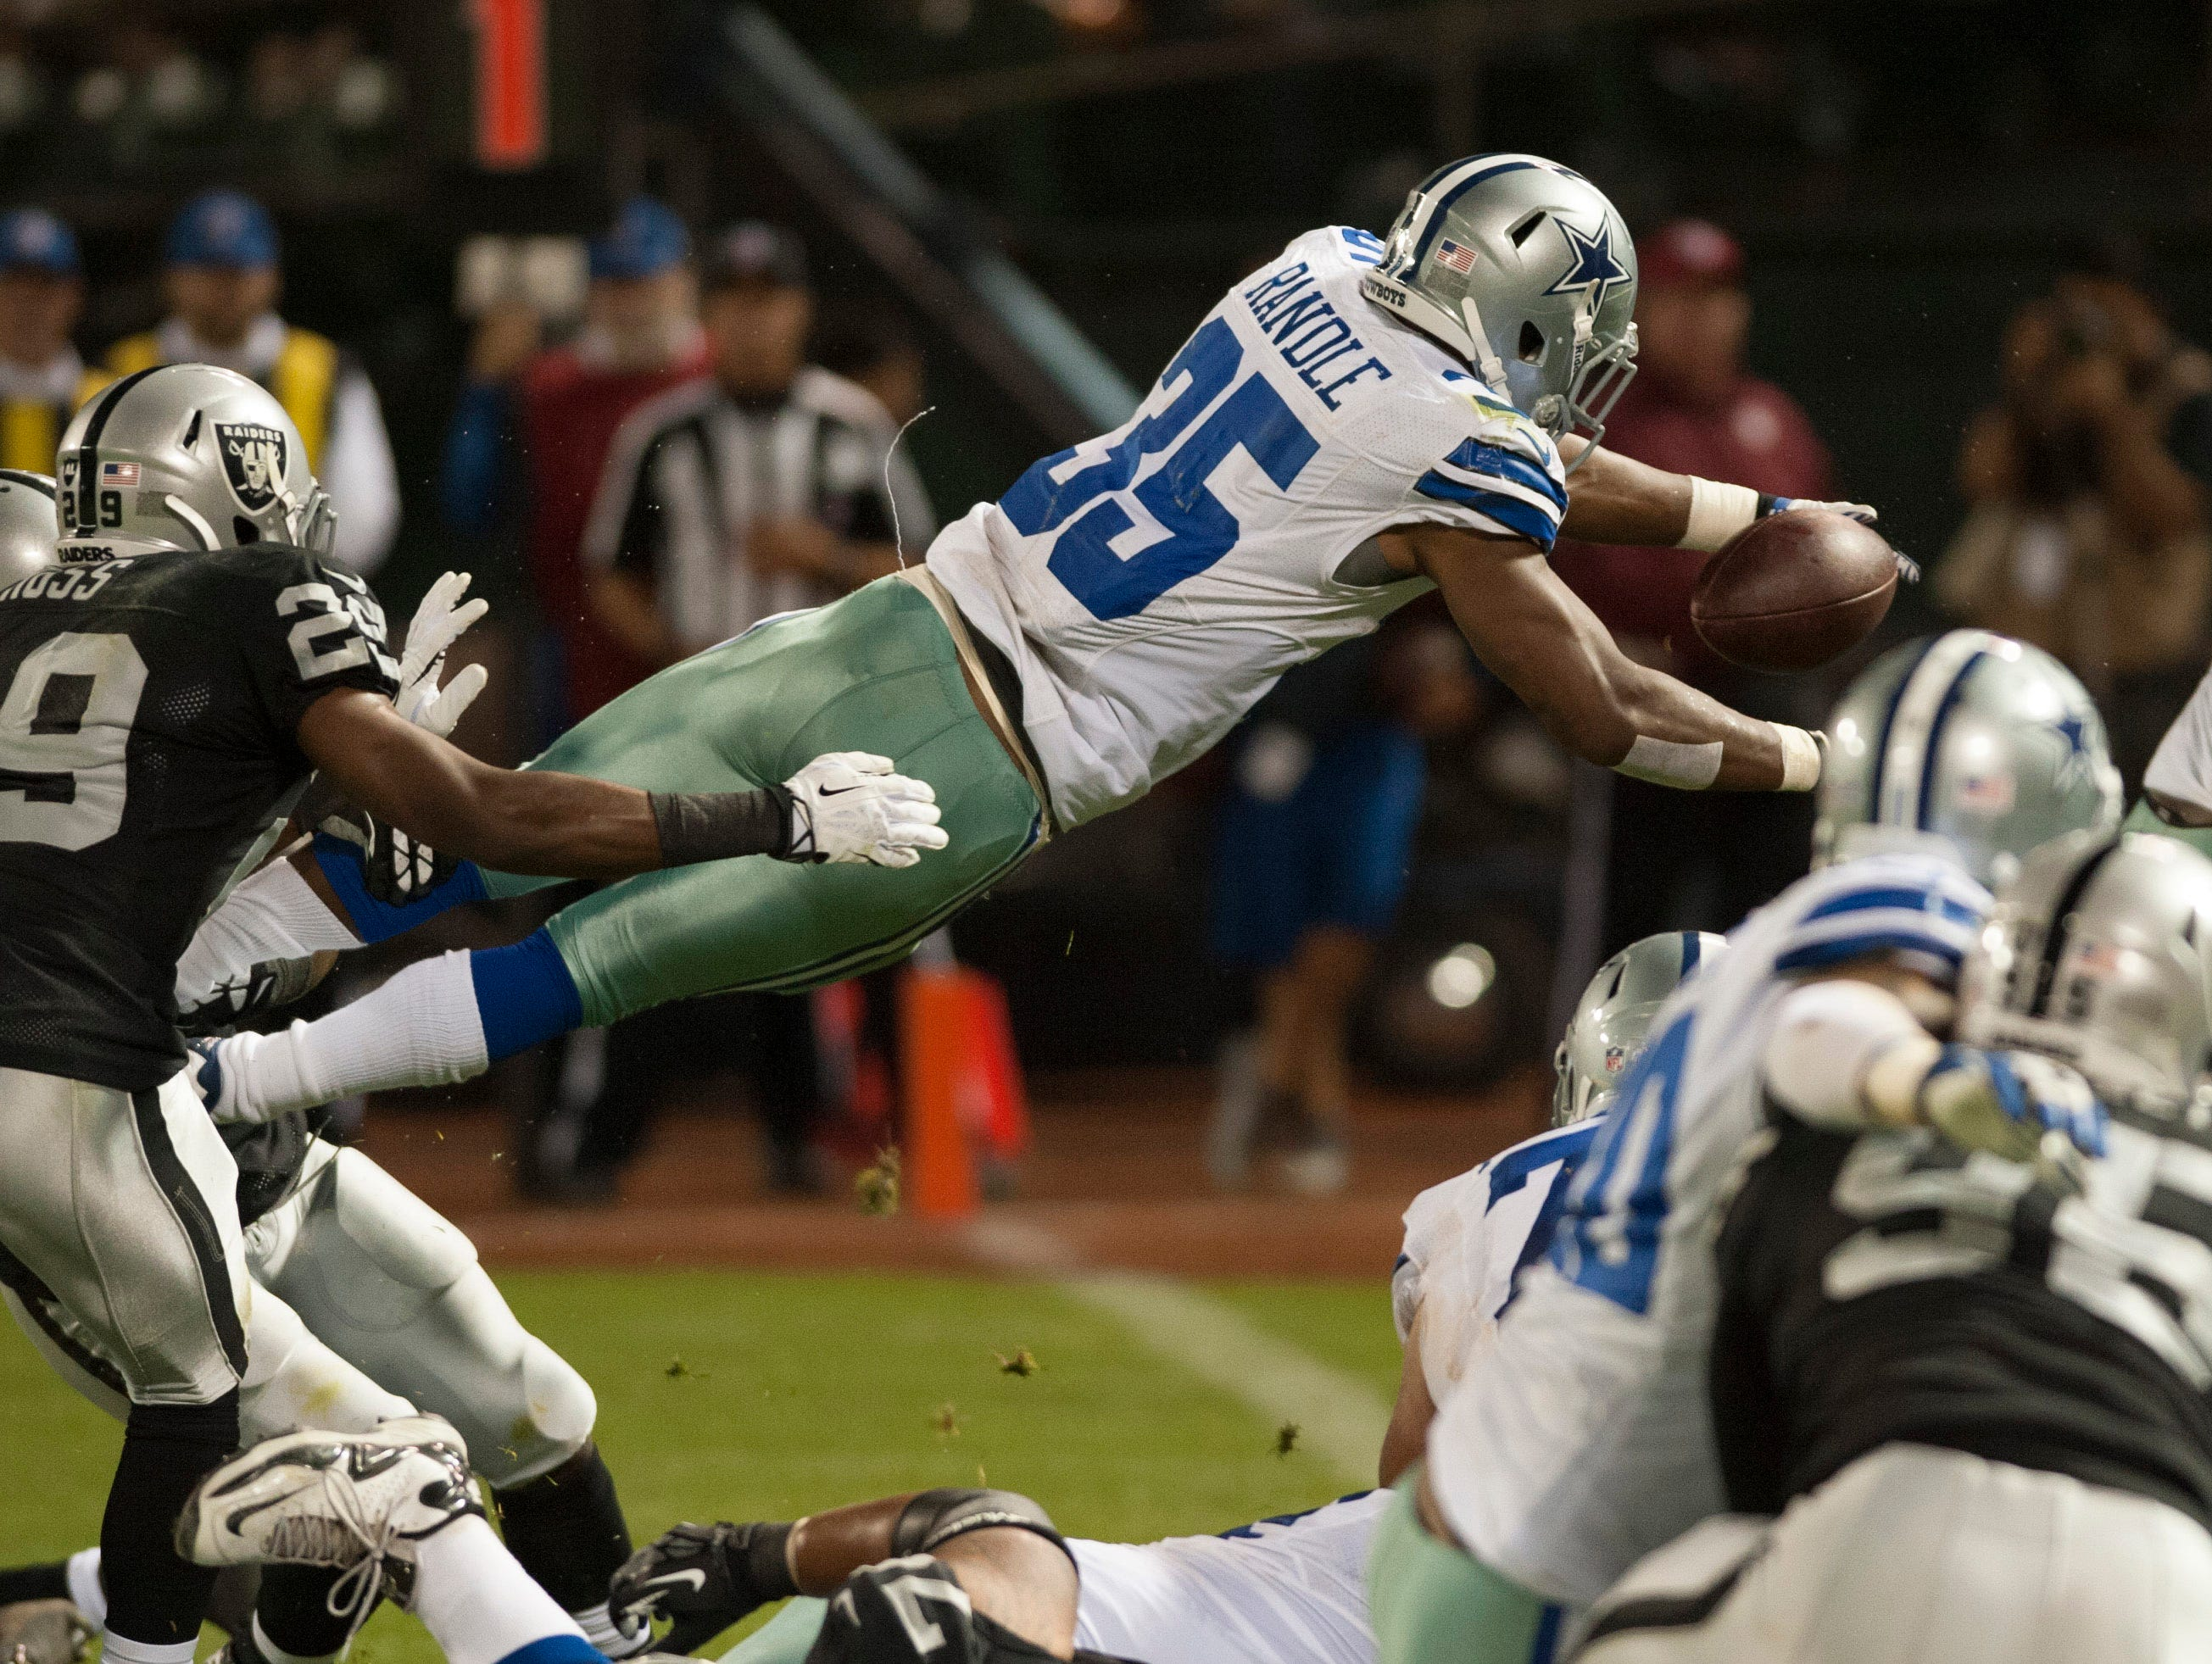 Dallas Cowboys running back Joseph Randle (35) dives for a touchdown during the fourth quarter at O.Co Coliseum.